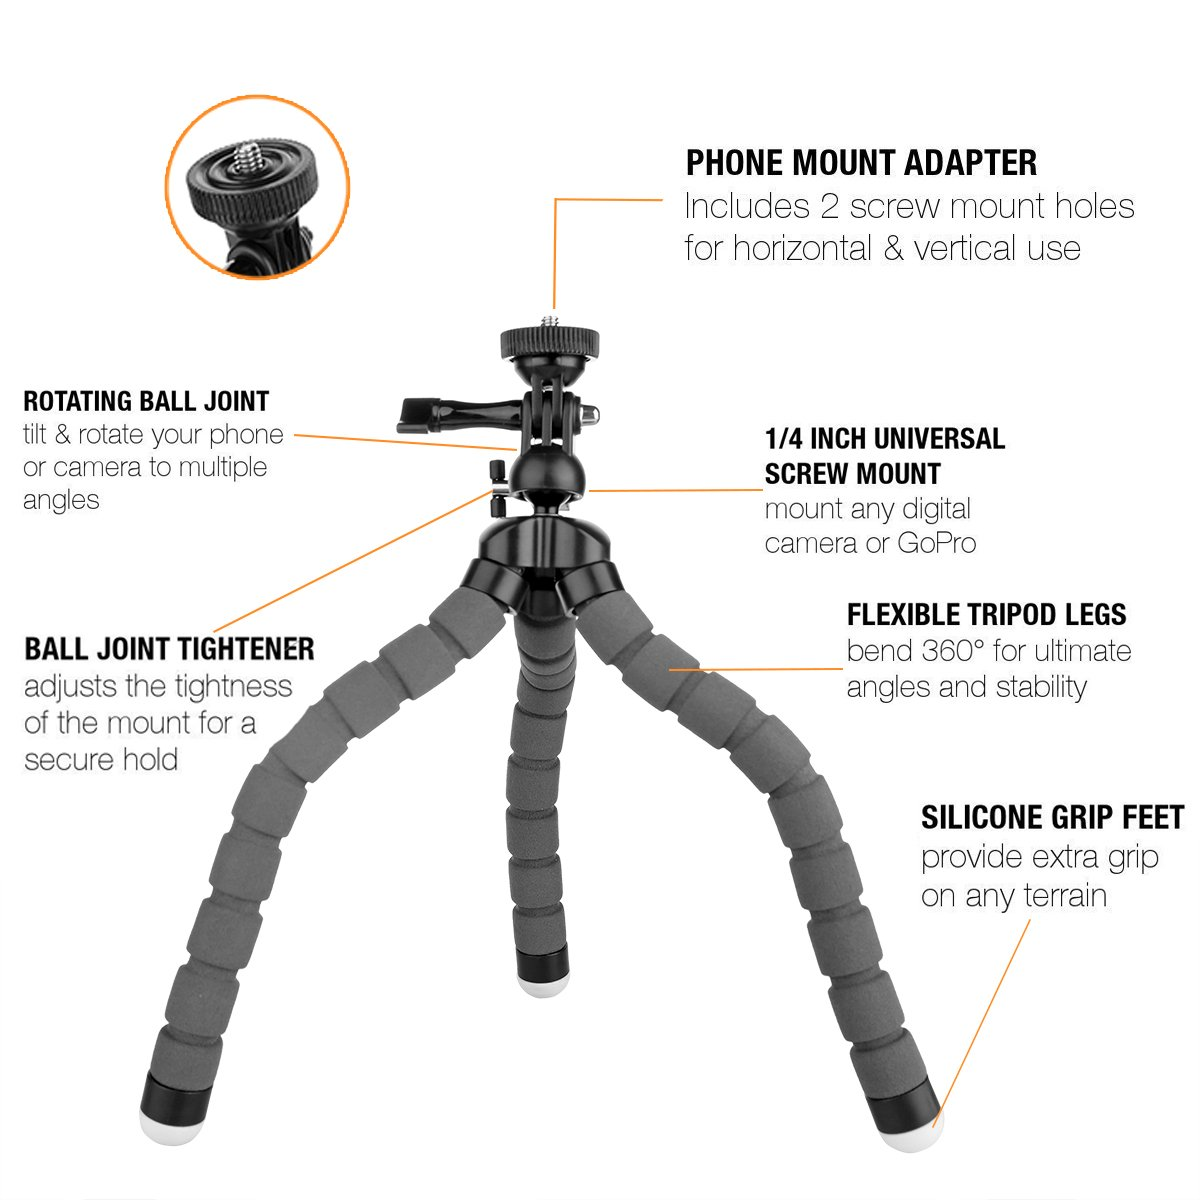 Kamisafe KT-600S Mini Flexible Tripod Lightweight Adjustable Octopus Tripod Legs Selfie Stick Stand with Universal Phone Clip Holder for iPhone Cellphones Gopro Mini DSLR Cameras (Grey)